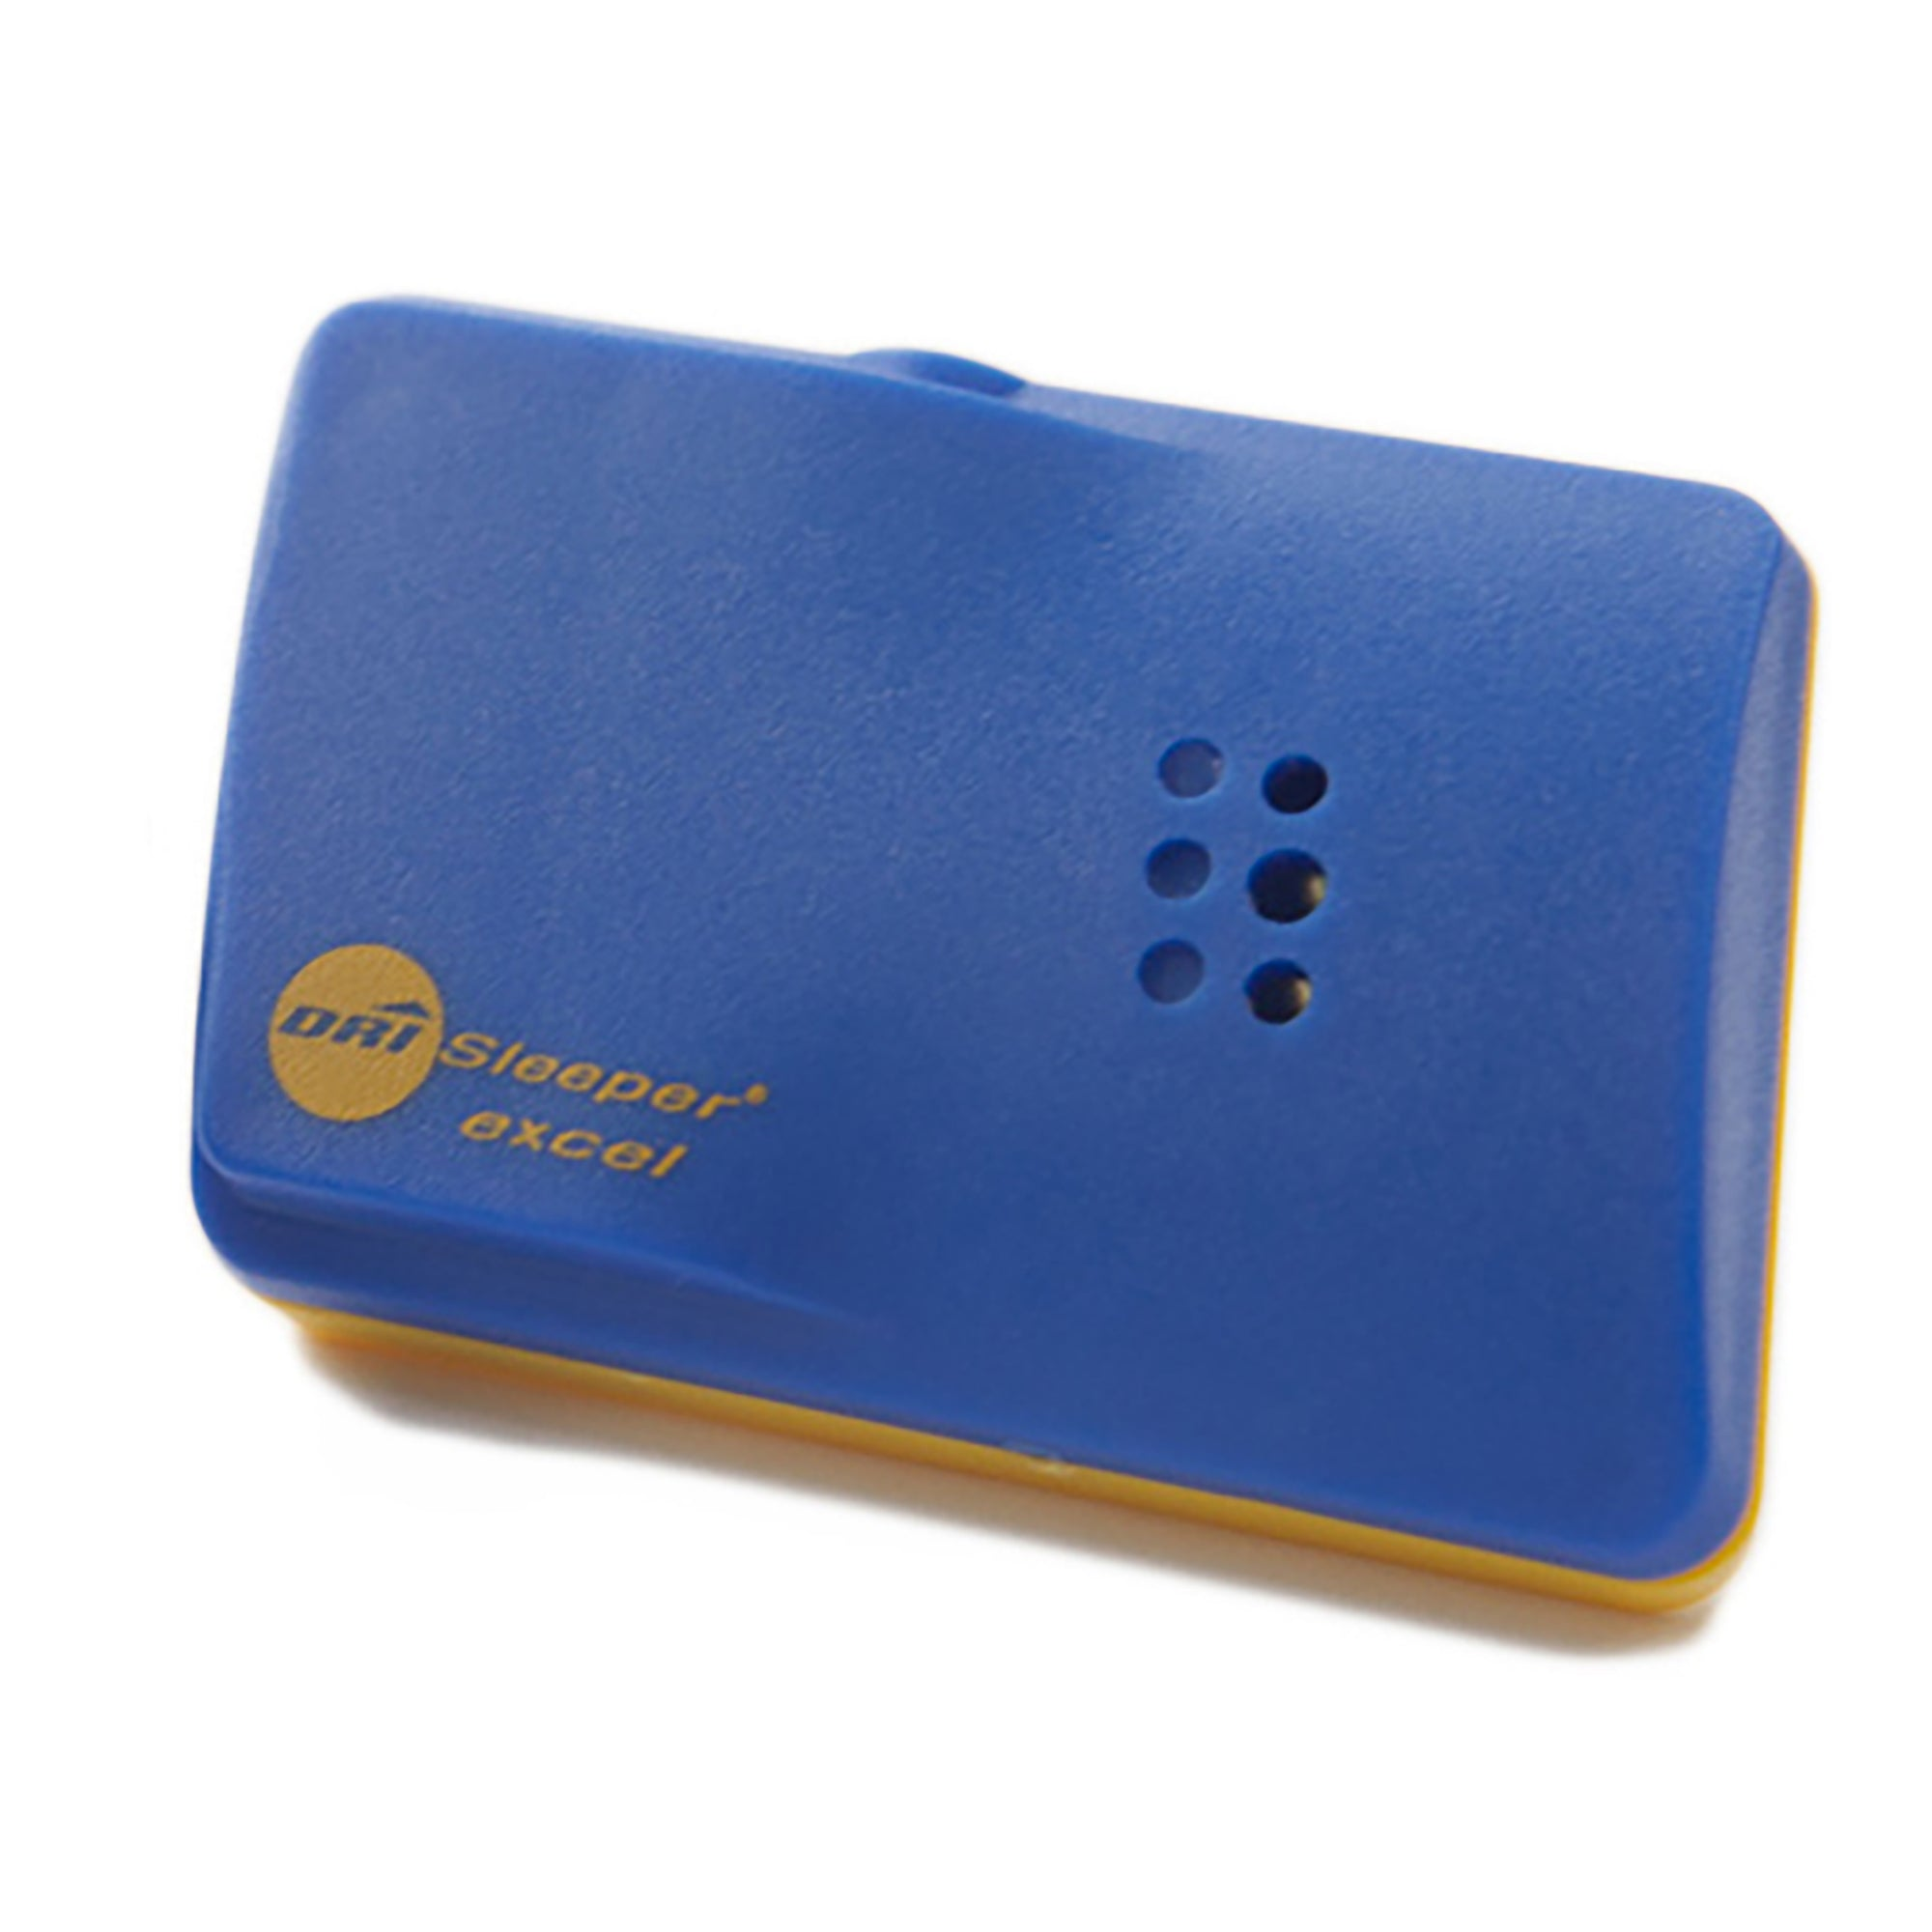 DRI Sleeper Excel Alarm Base